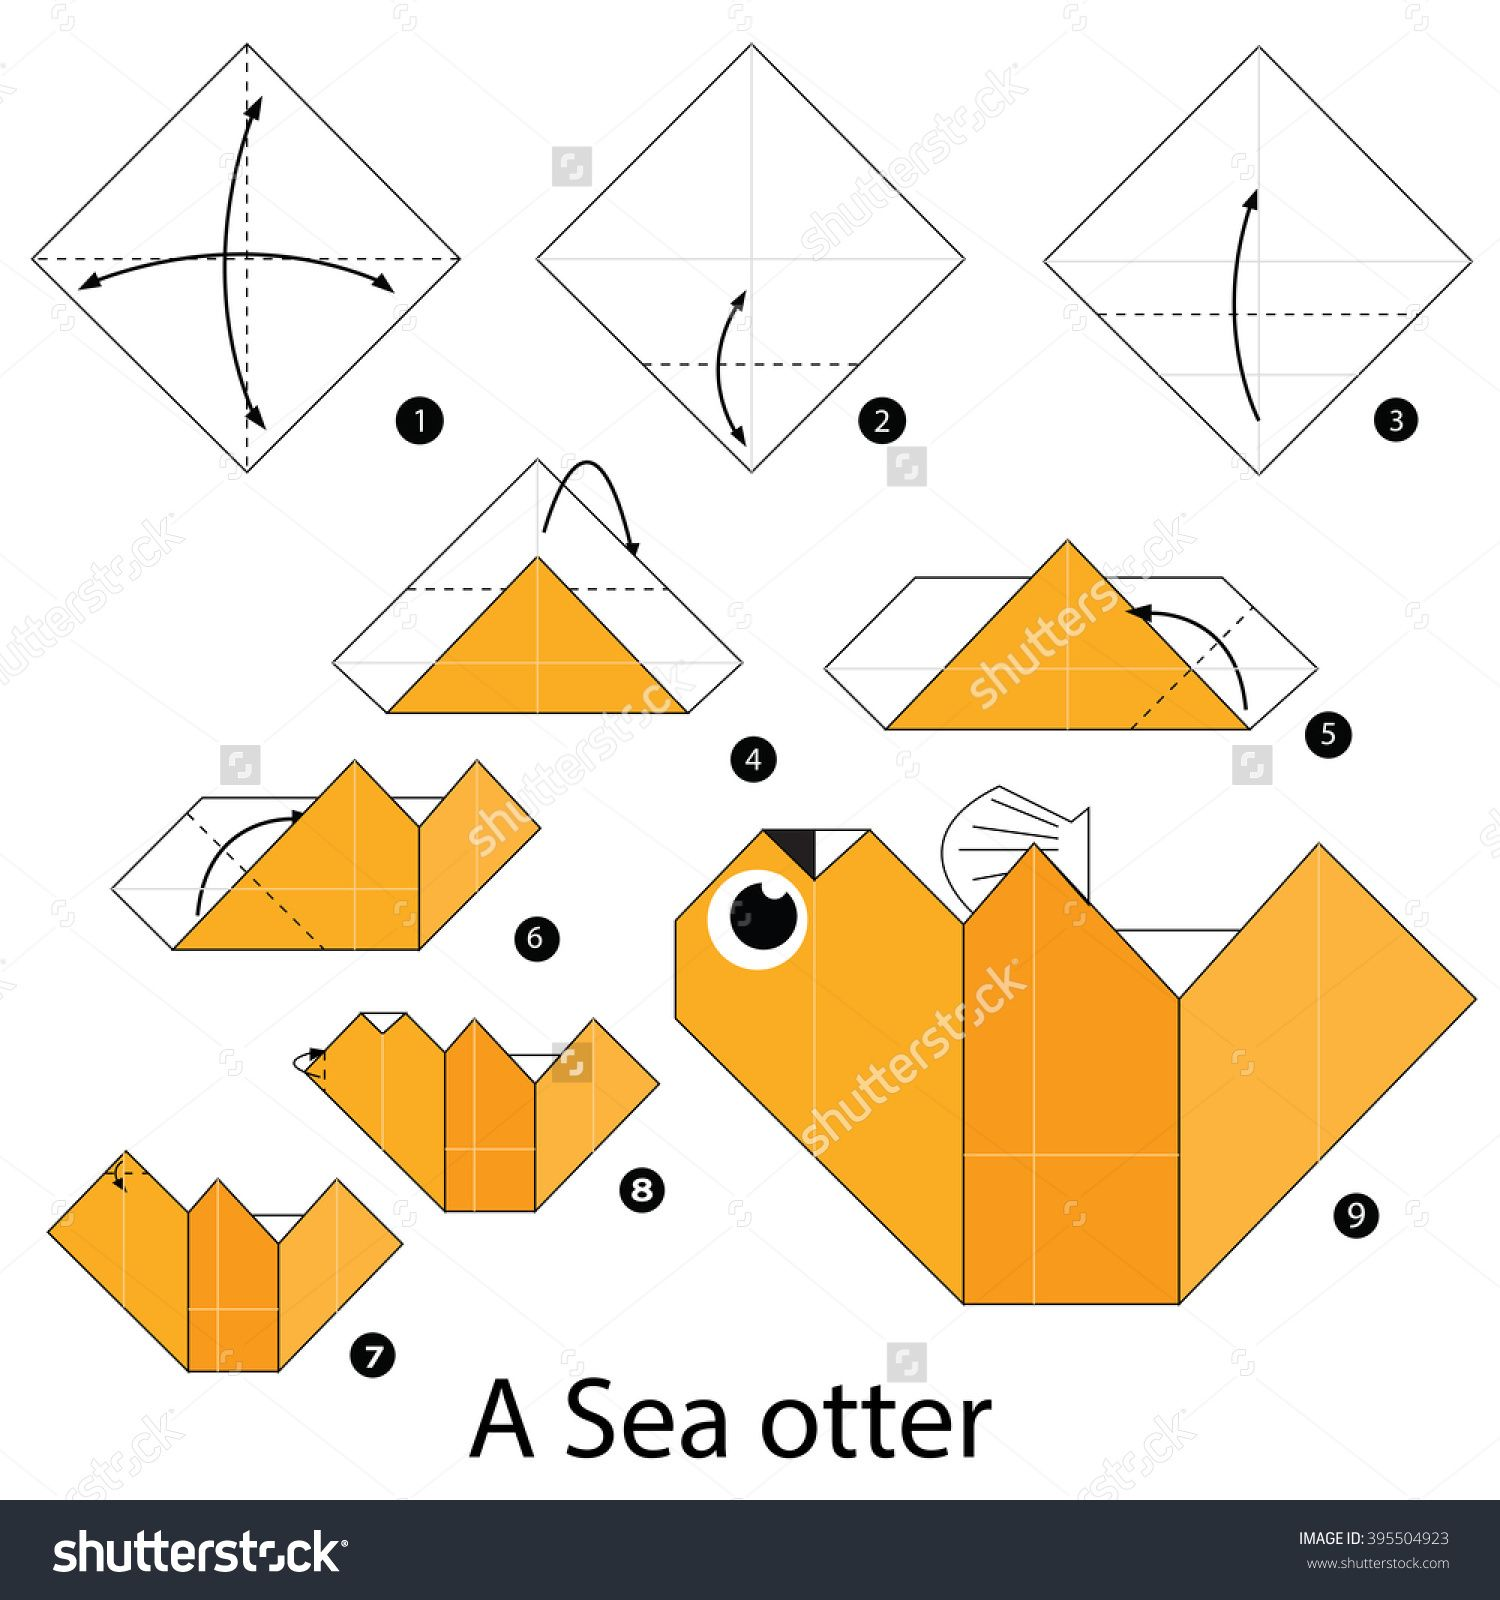 Step by step instructions how to make origami a sea otter stock step by step instructions how to make origami a sea otter stock vektorkp 395504923 jeuxipadfo Choice Image